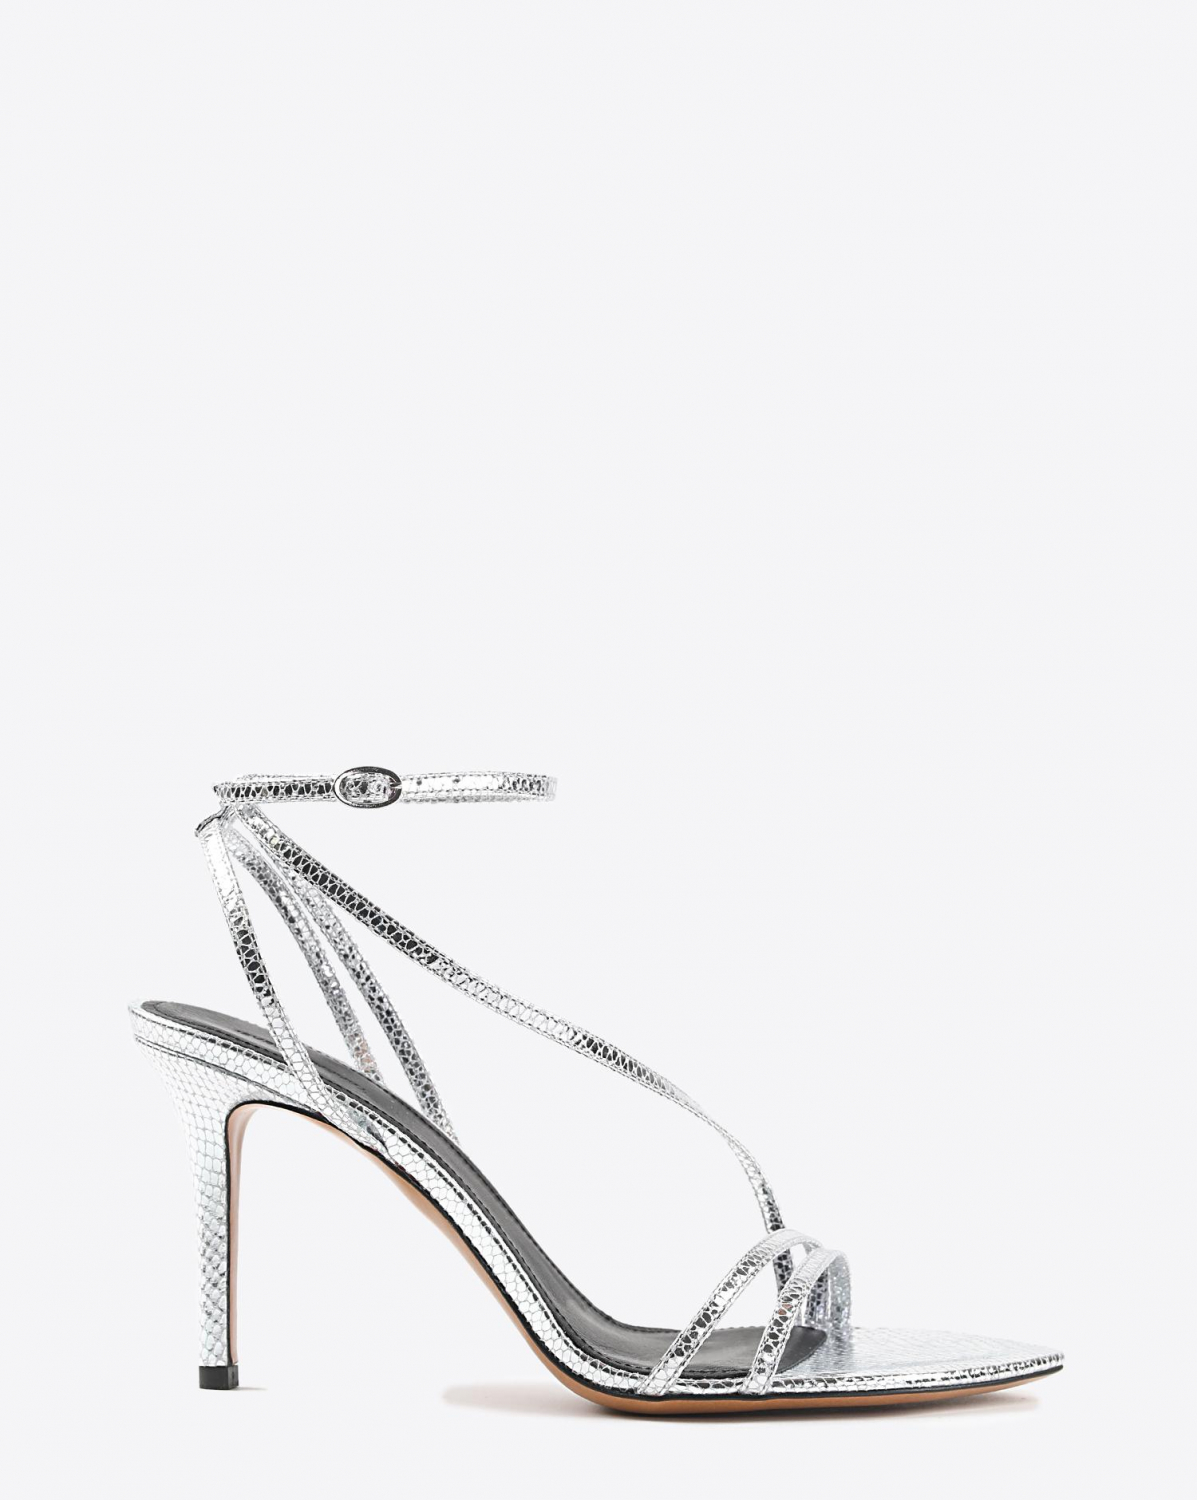 Isabel Marant Chaussures Sandales AXEE - Silver